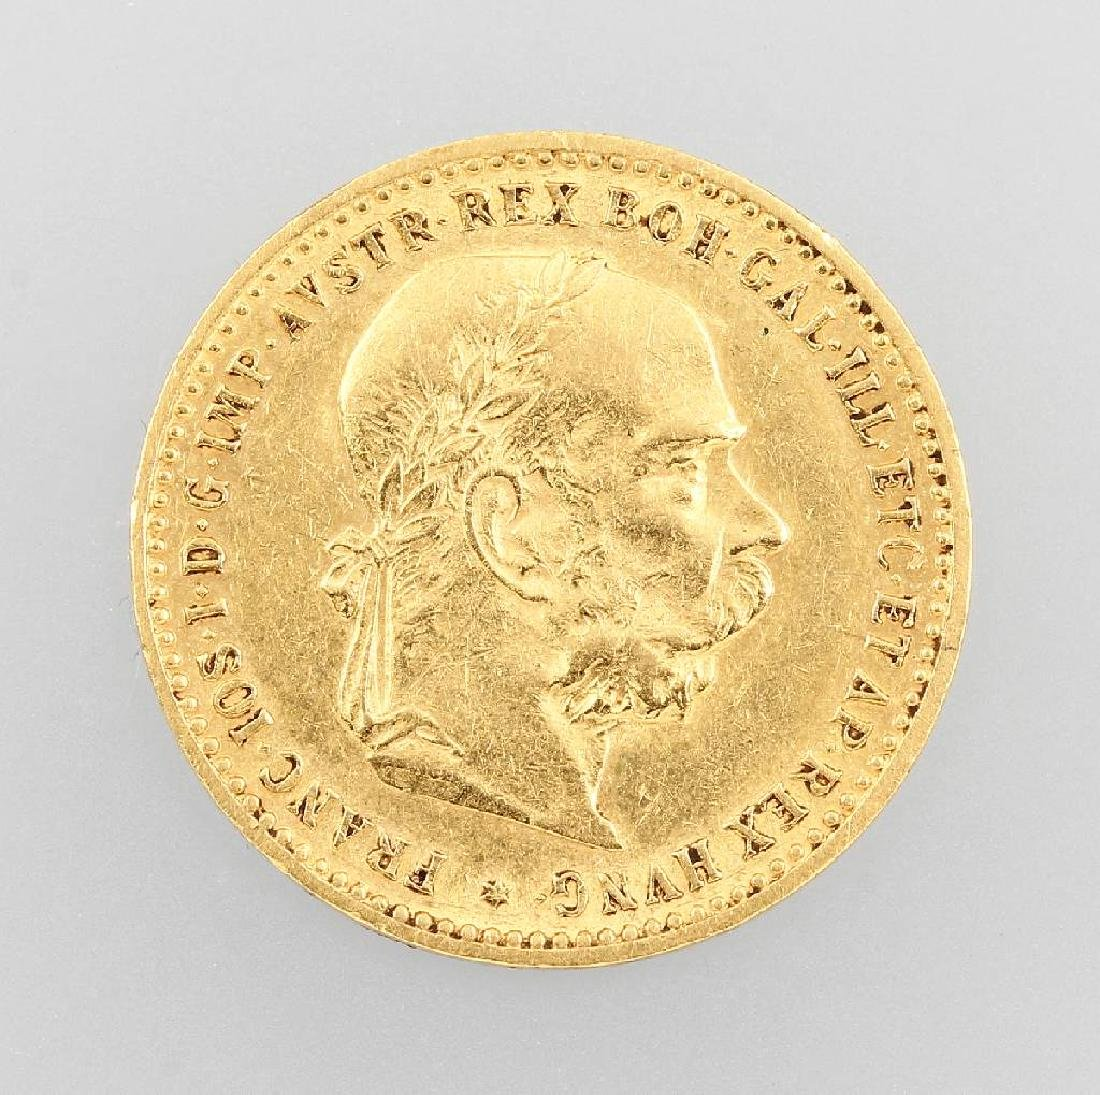 Gold coin, 10 kroner, Austria-Hungary